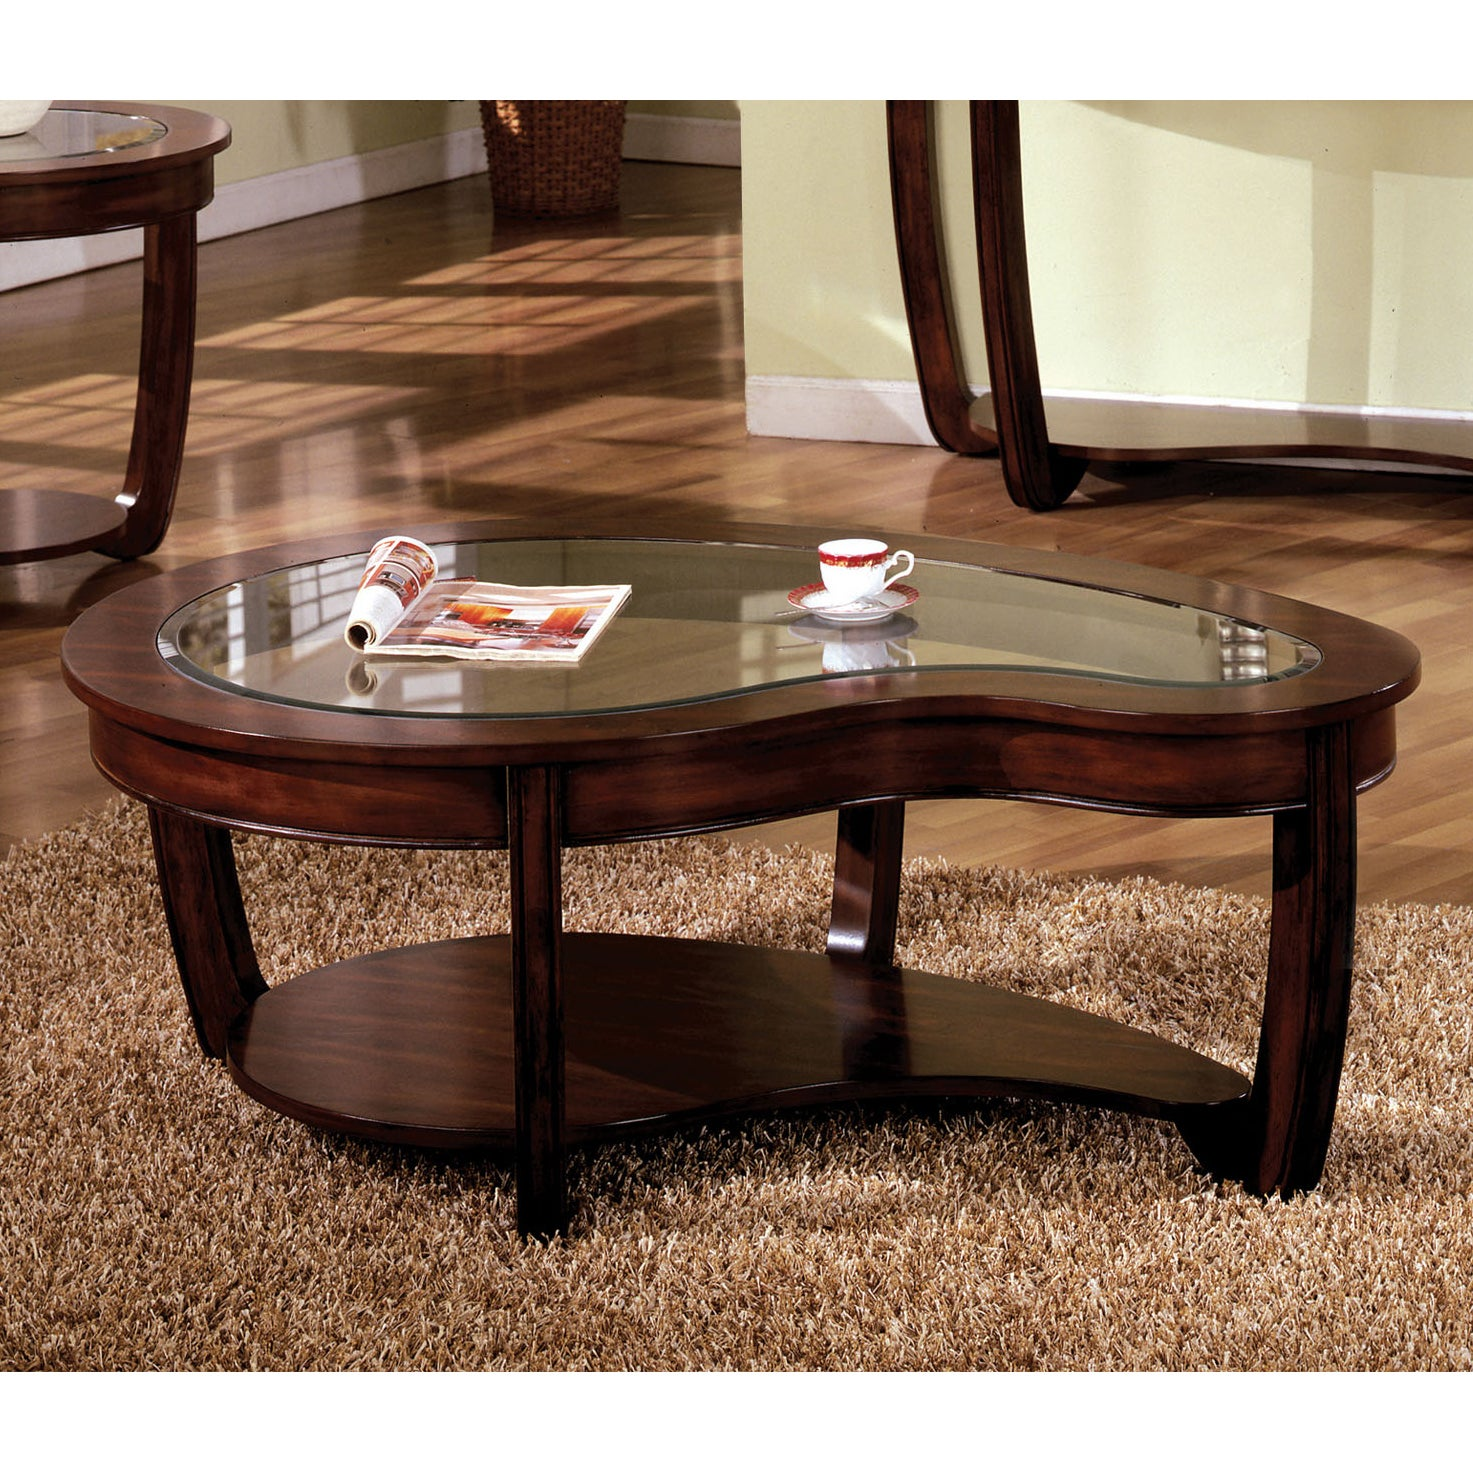 Gracewood Hollow Paolini Curved Dark Cherry Gl Top Coffee Table On Free Shipping Today 20000828